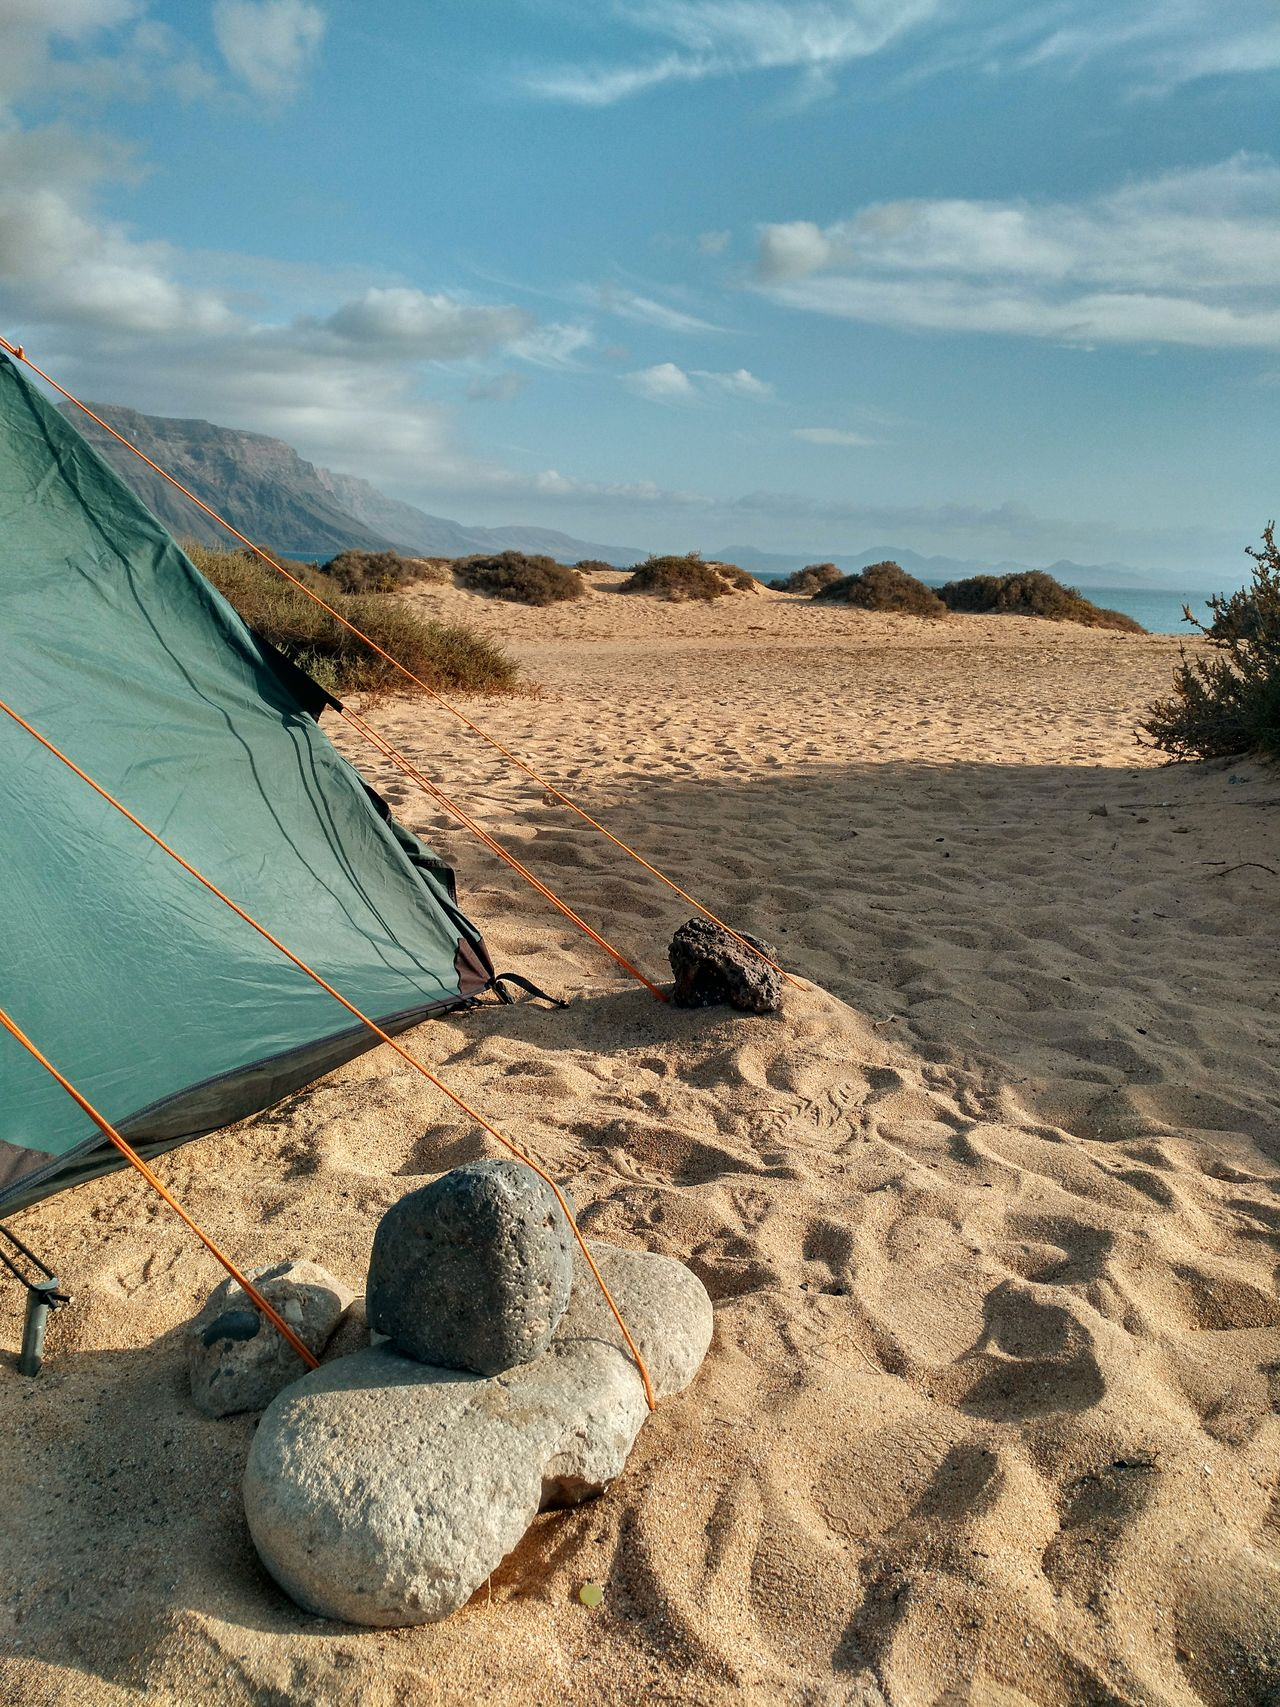 Camping Mai 2017⛺🏜🌋 Caleta Del Sebo Campsite Campinglife Outdoor Outside Canarias Canary Islands Lanzarote La Graciosa Rock Rocks Wind Adventure Sand Sand Dune Tentview Ocean View Hiking Landscape Nature Camping Moments Vulcano Island SPAIN Power Live For The Story The Great Outdoors - 2017 EyeEm Awards